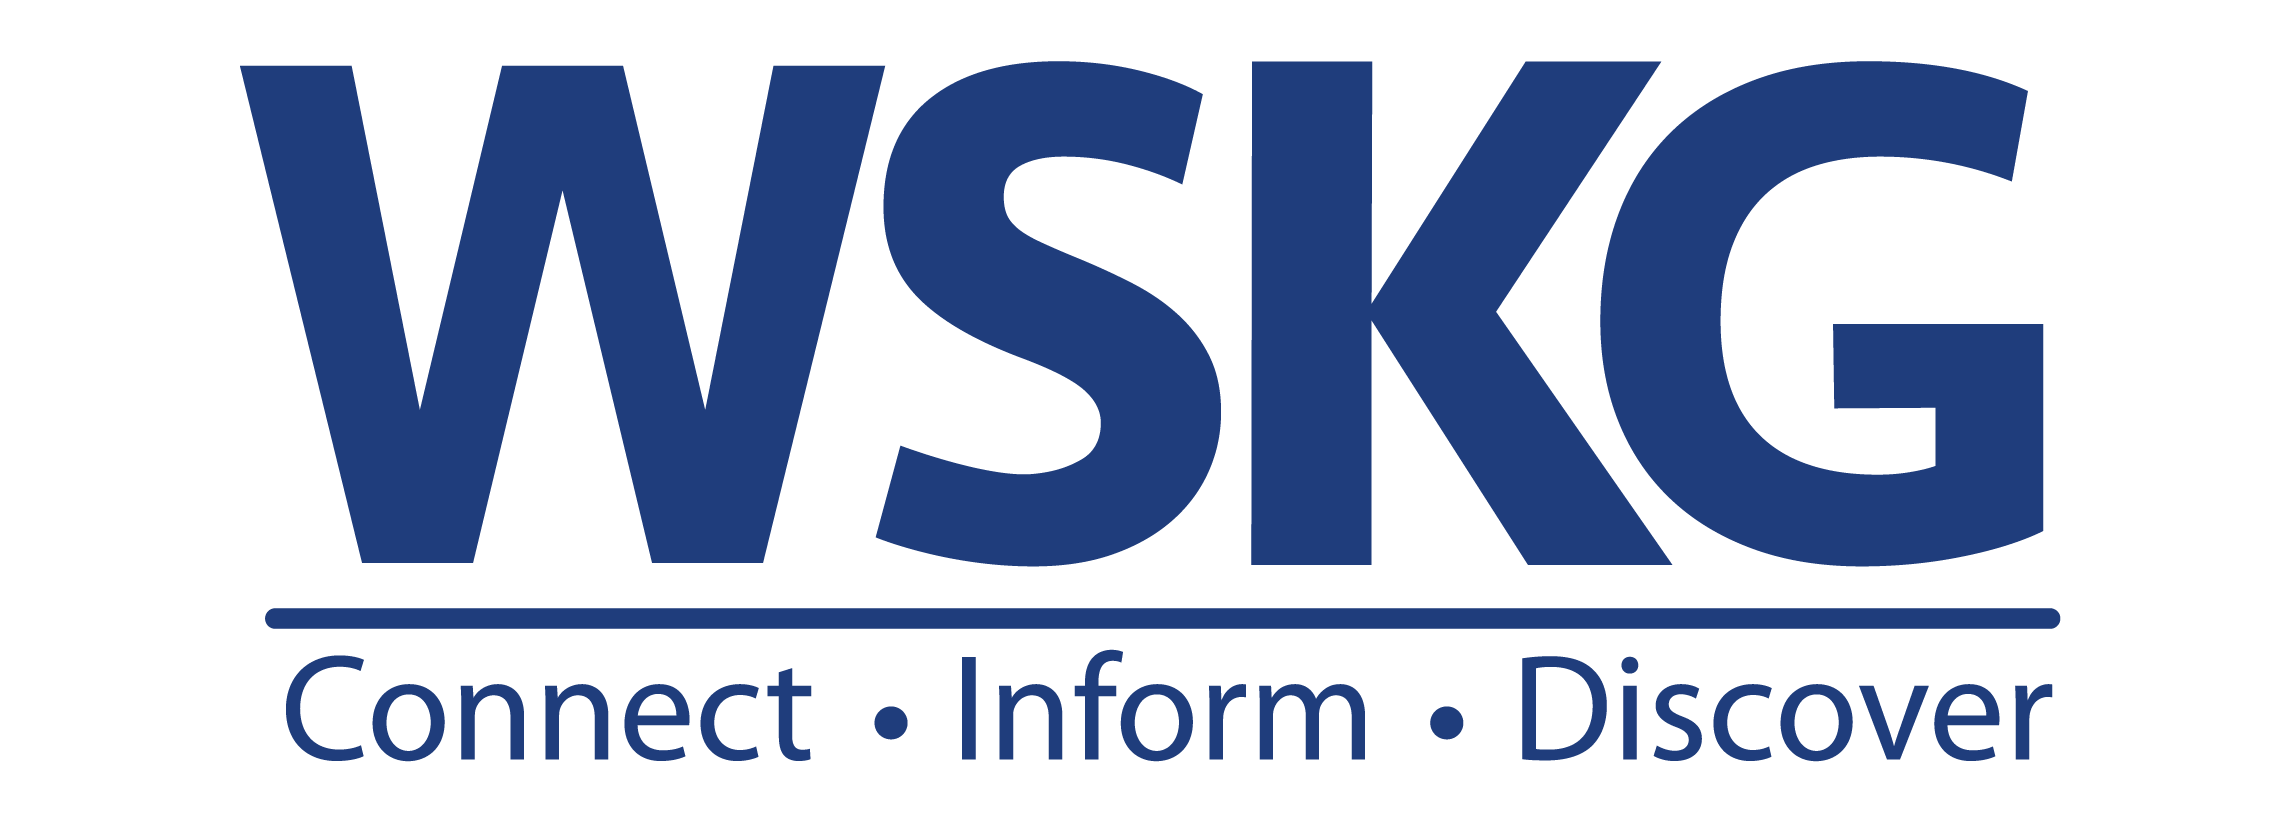 WSKG - Connect - Inform - Discover